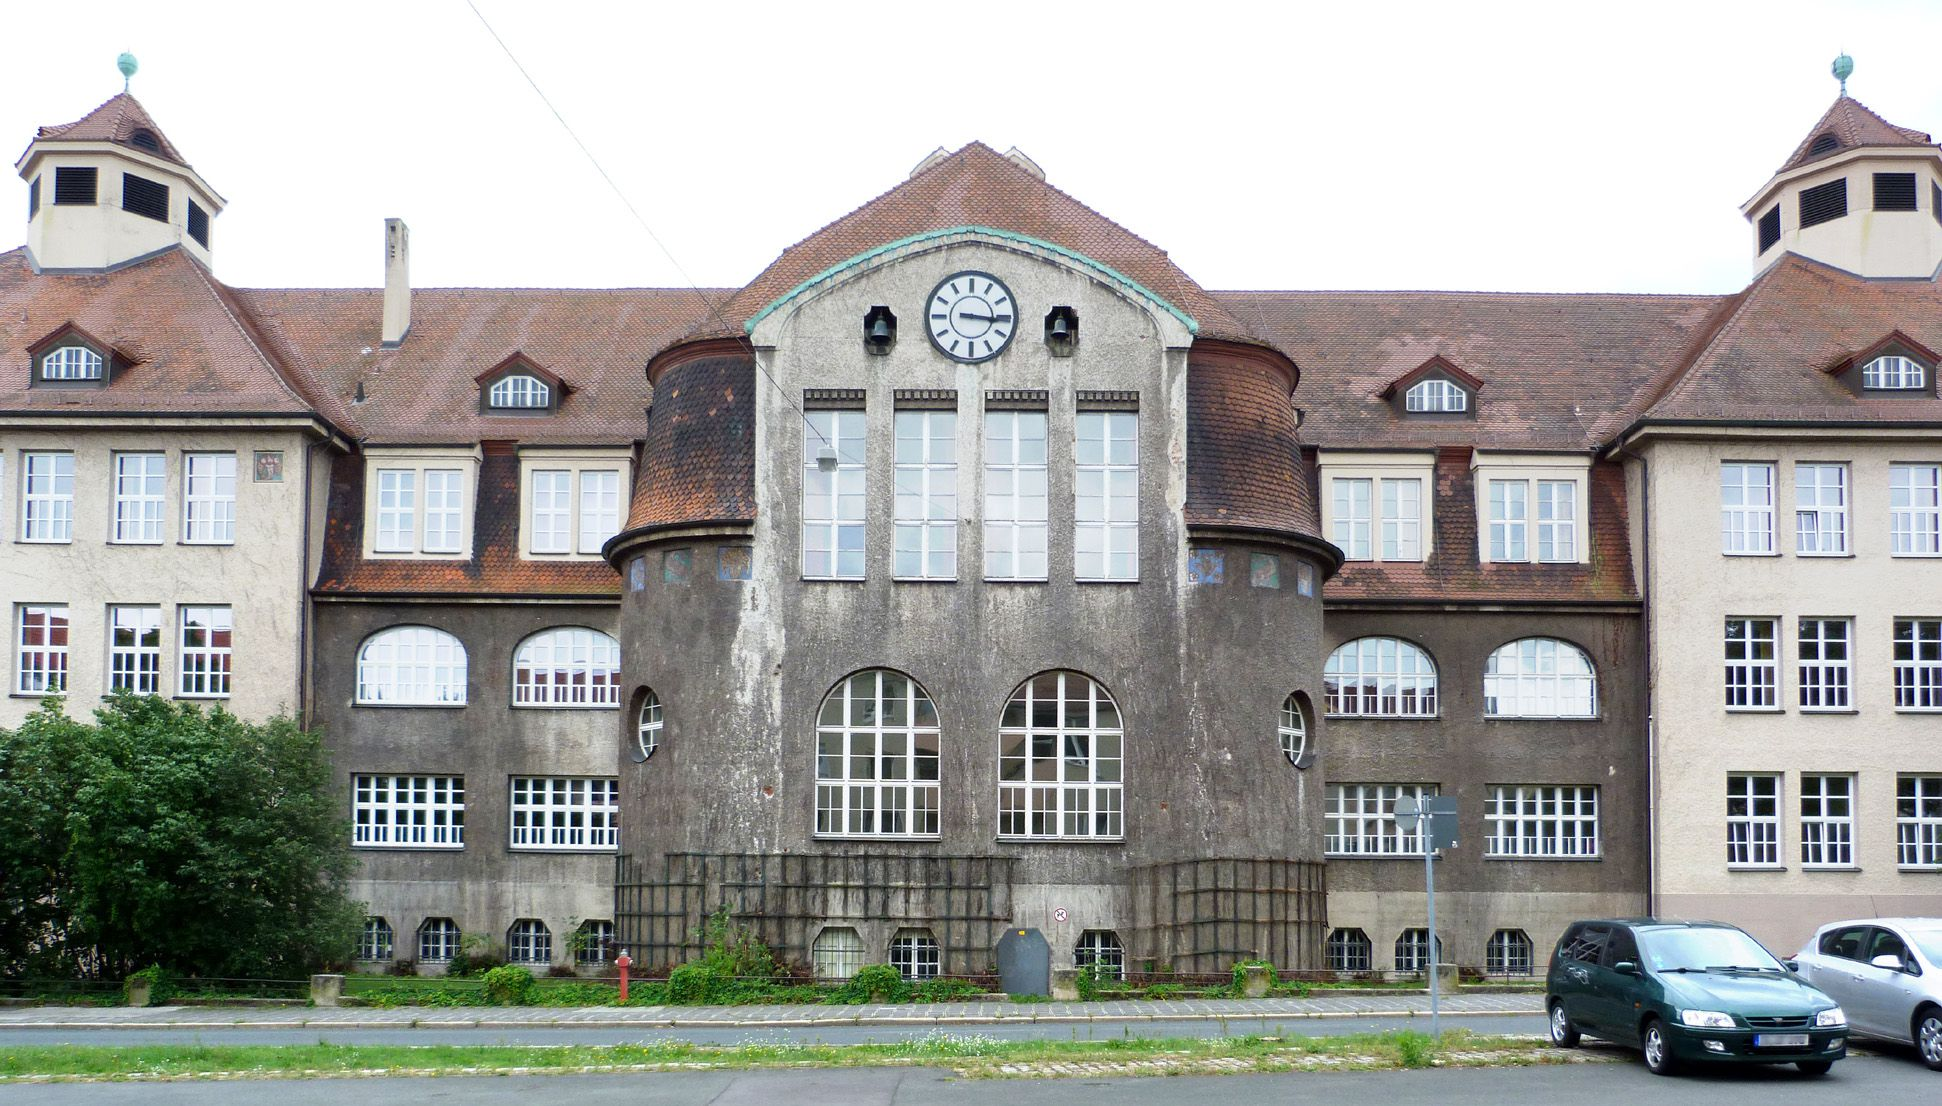 Georg-Paul-Amberger-School View from the northwest